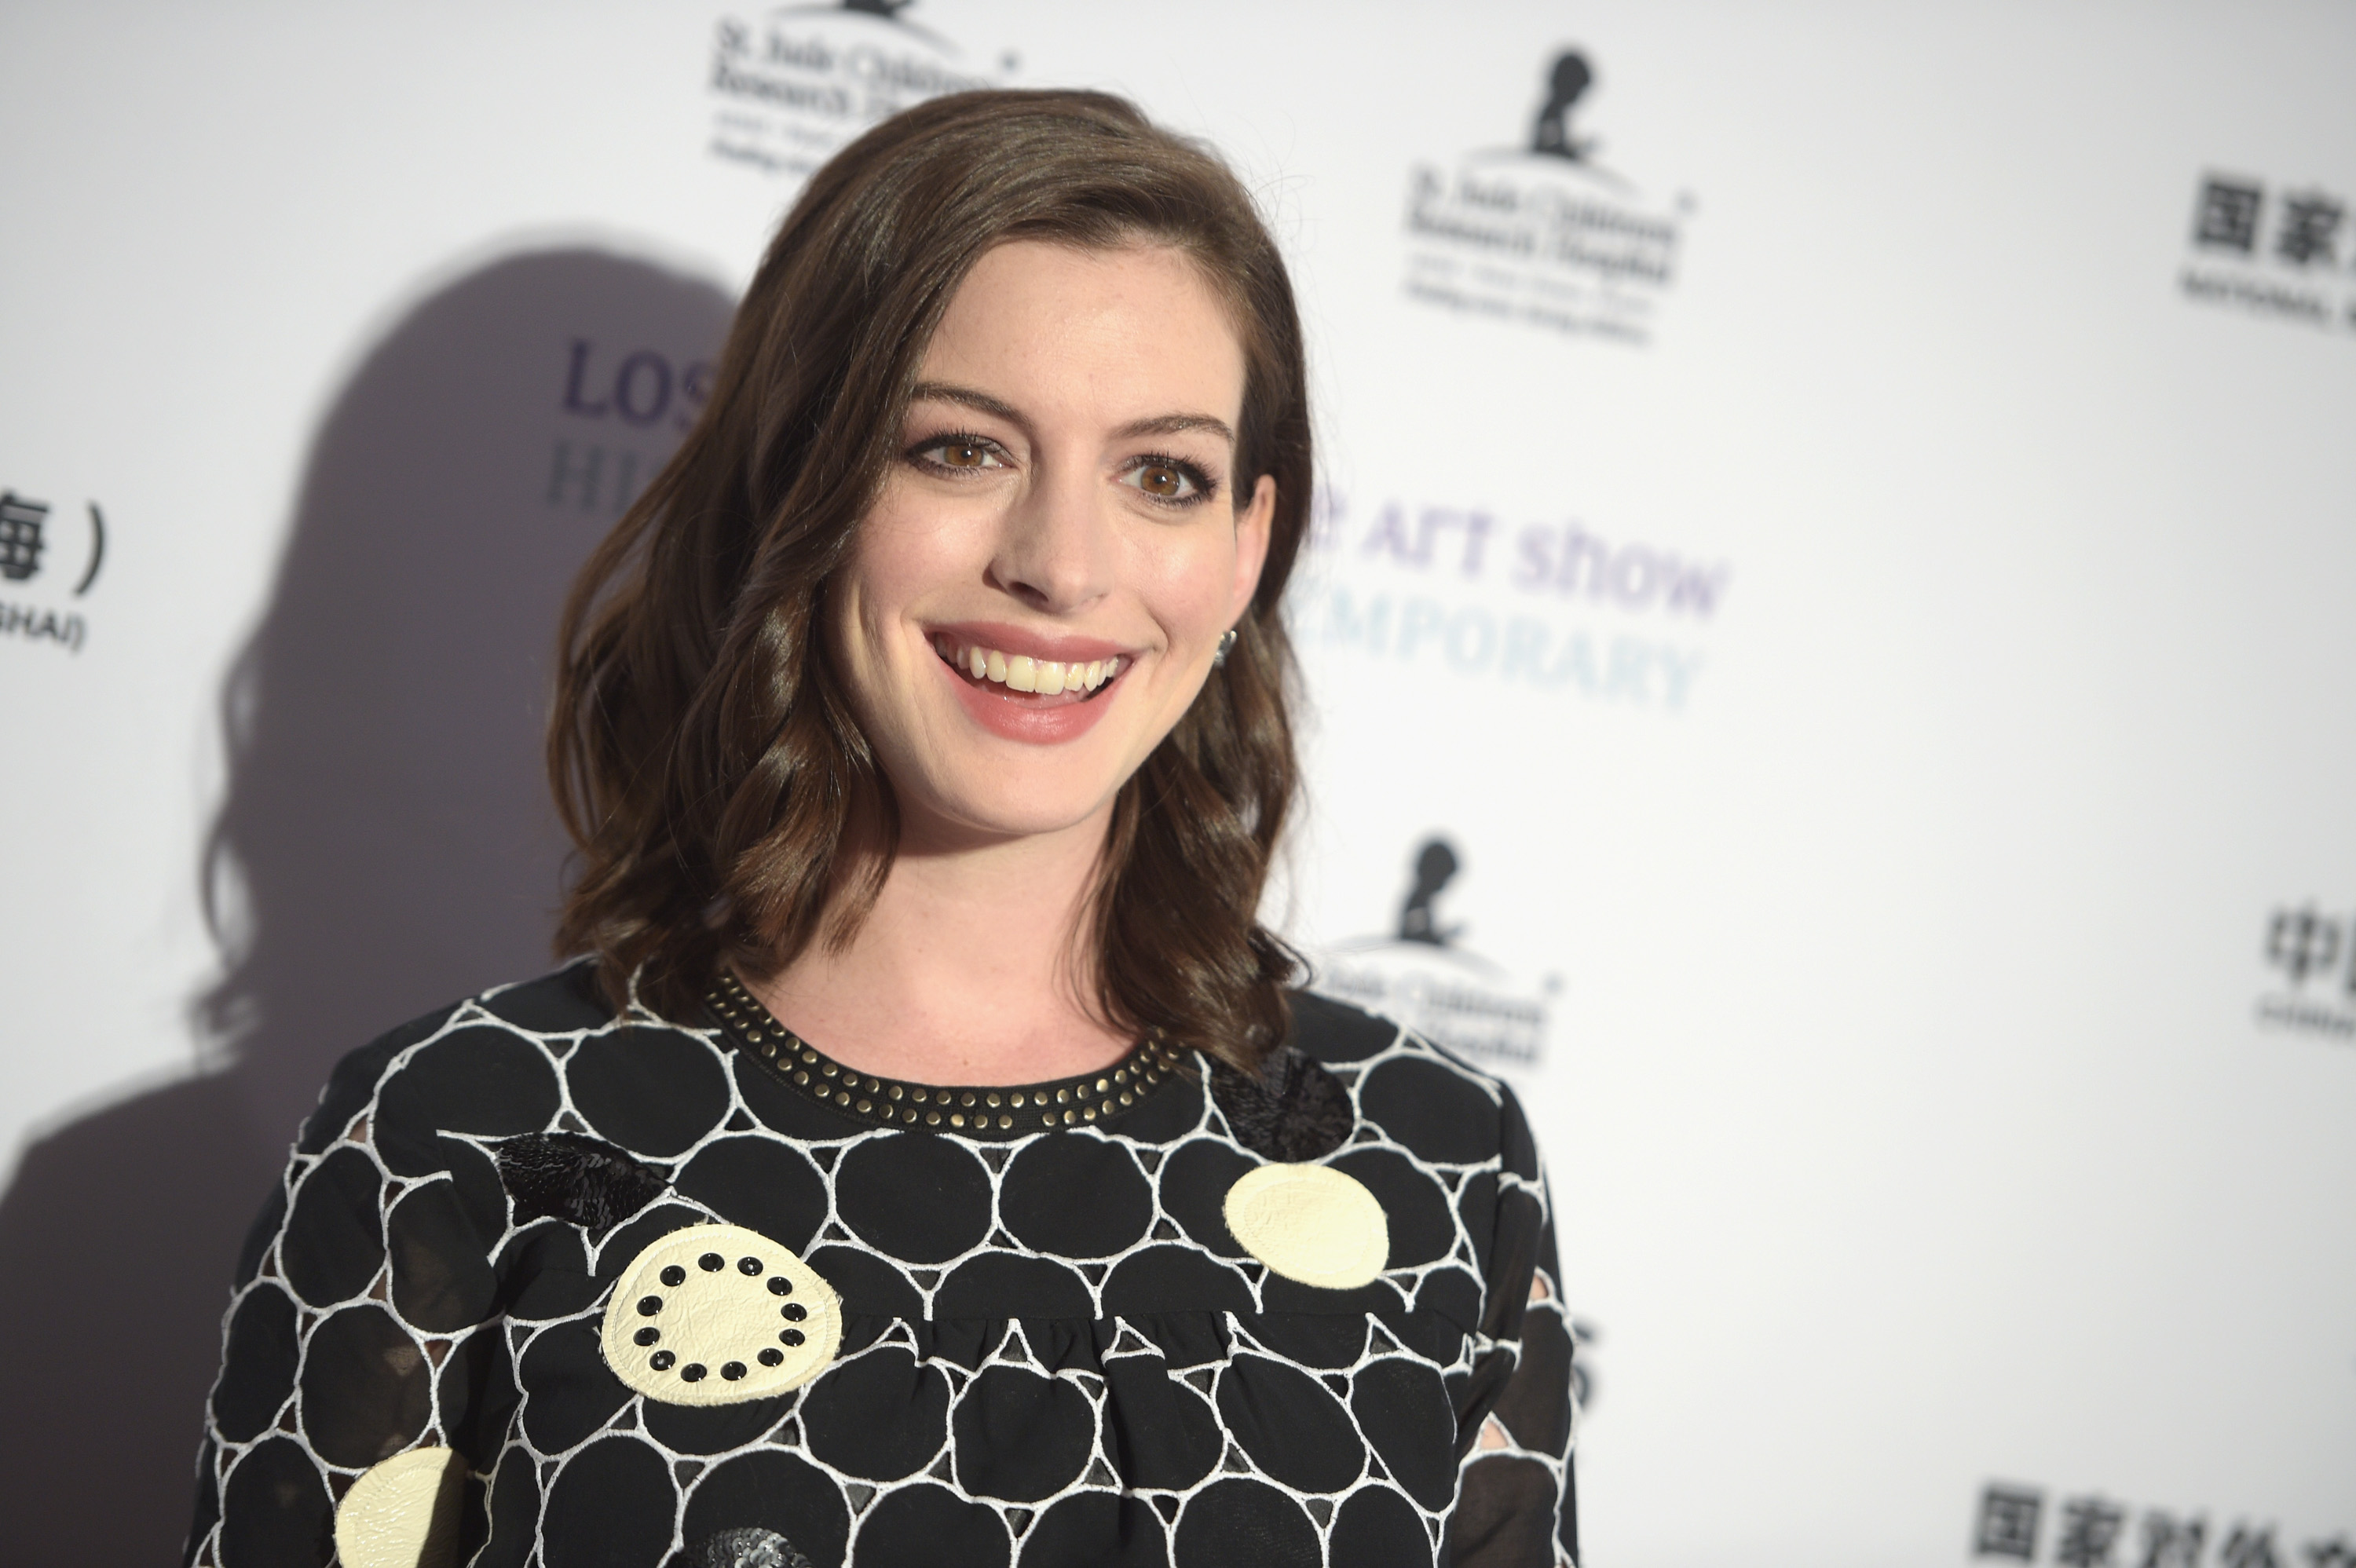 Anne Hathaway just wore black leather overalls, we are speechless